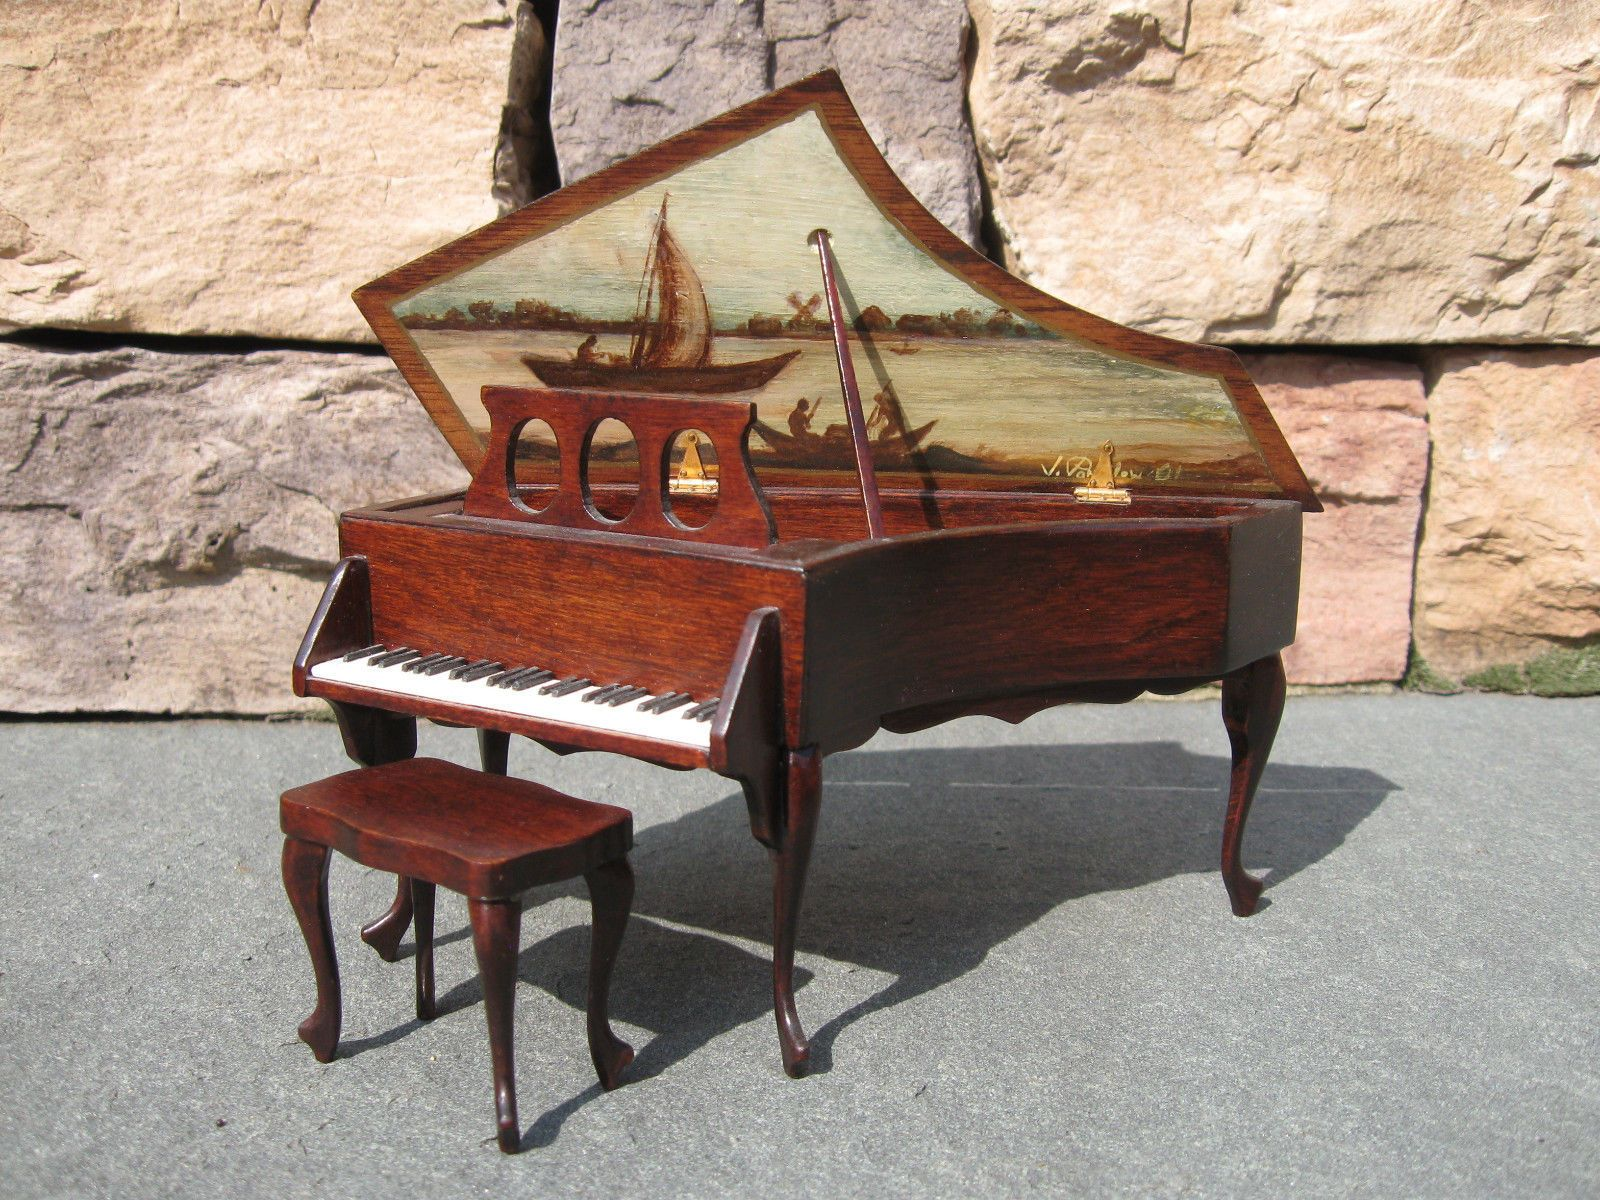 Signed Artisan Dollhouse Piano by Ralph Partelow